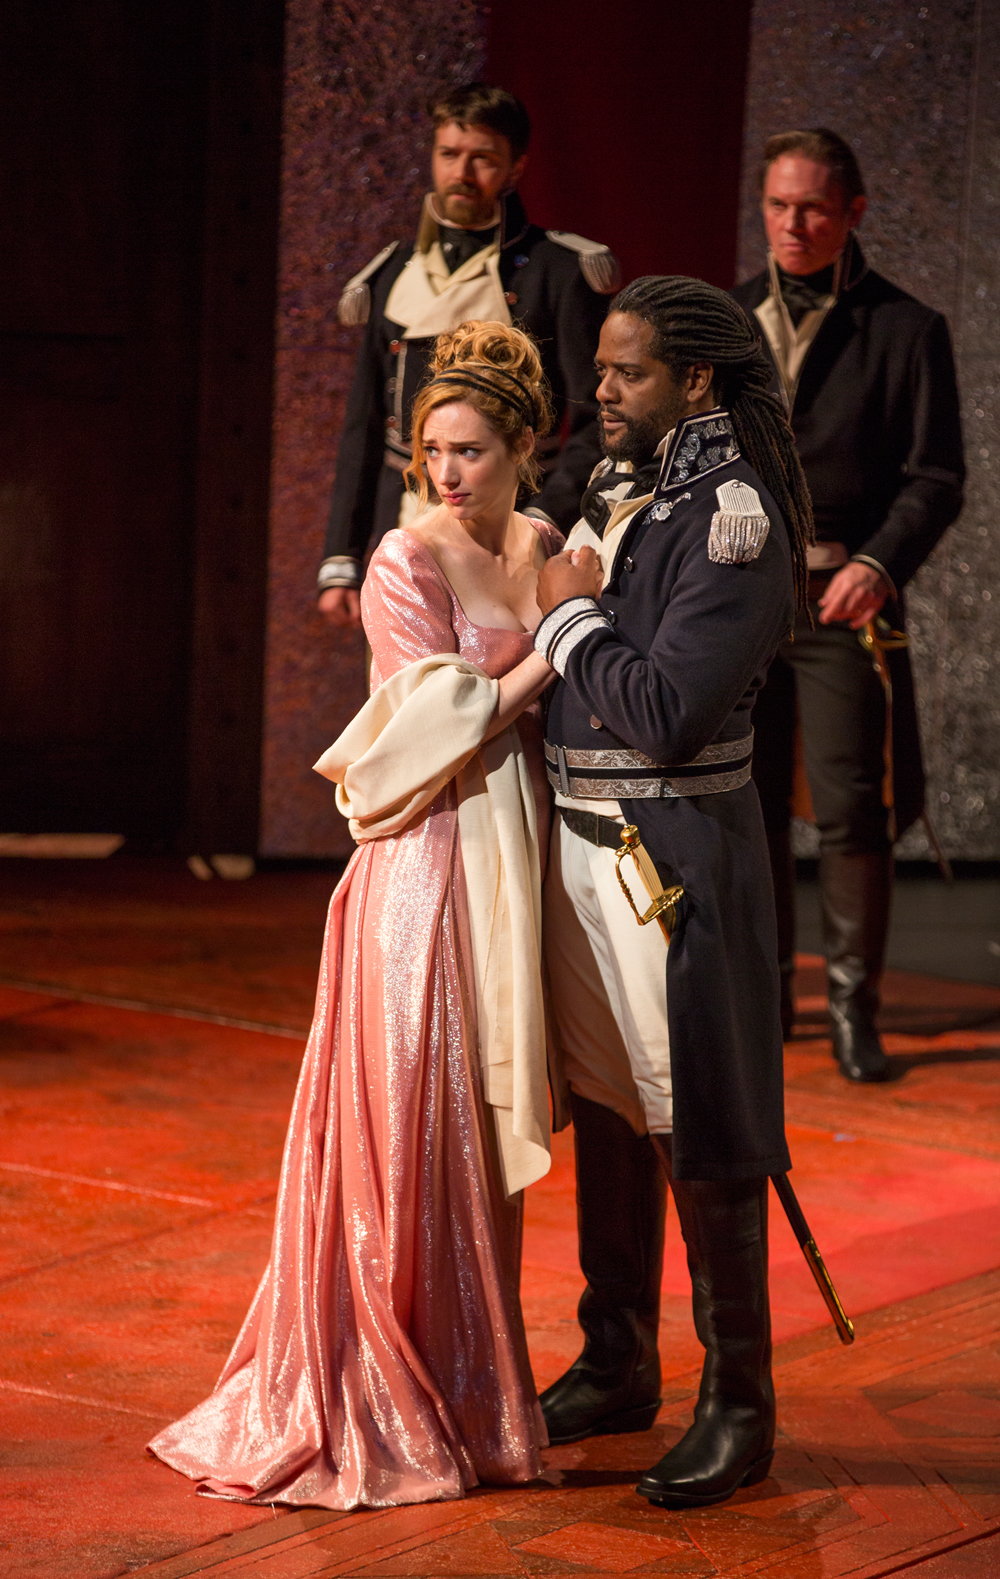 Kristen Connolly and Blair Underwood, with Noah Bean and Richard Thomas in The Old Globe's 2014 production of Othello, directed by Barry Edelstein. Photo by Jim Cox.